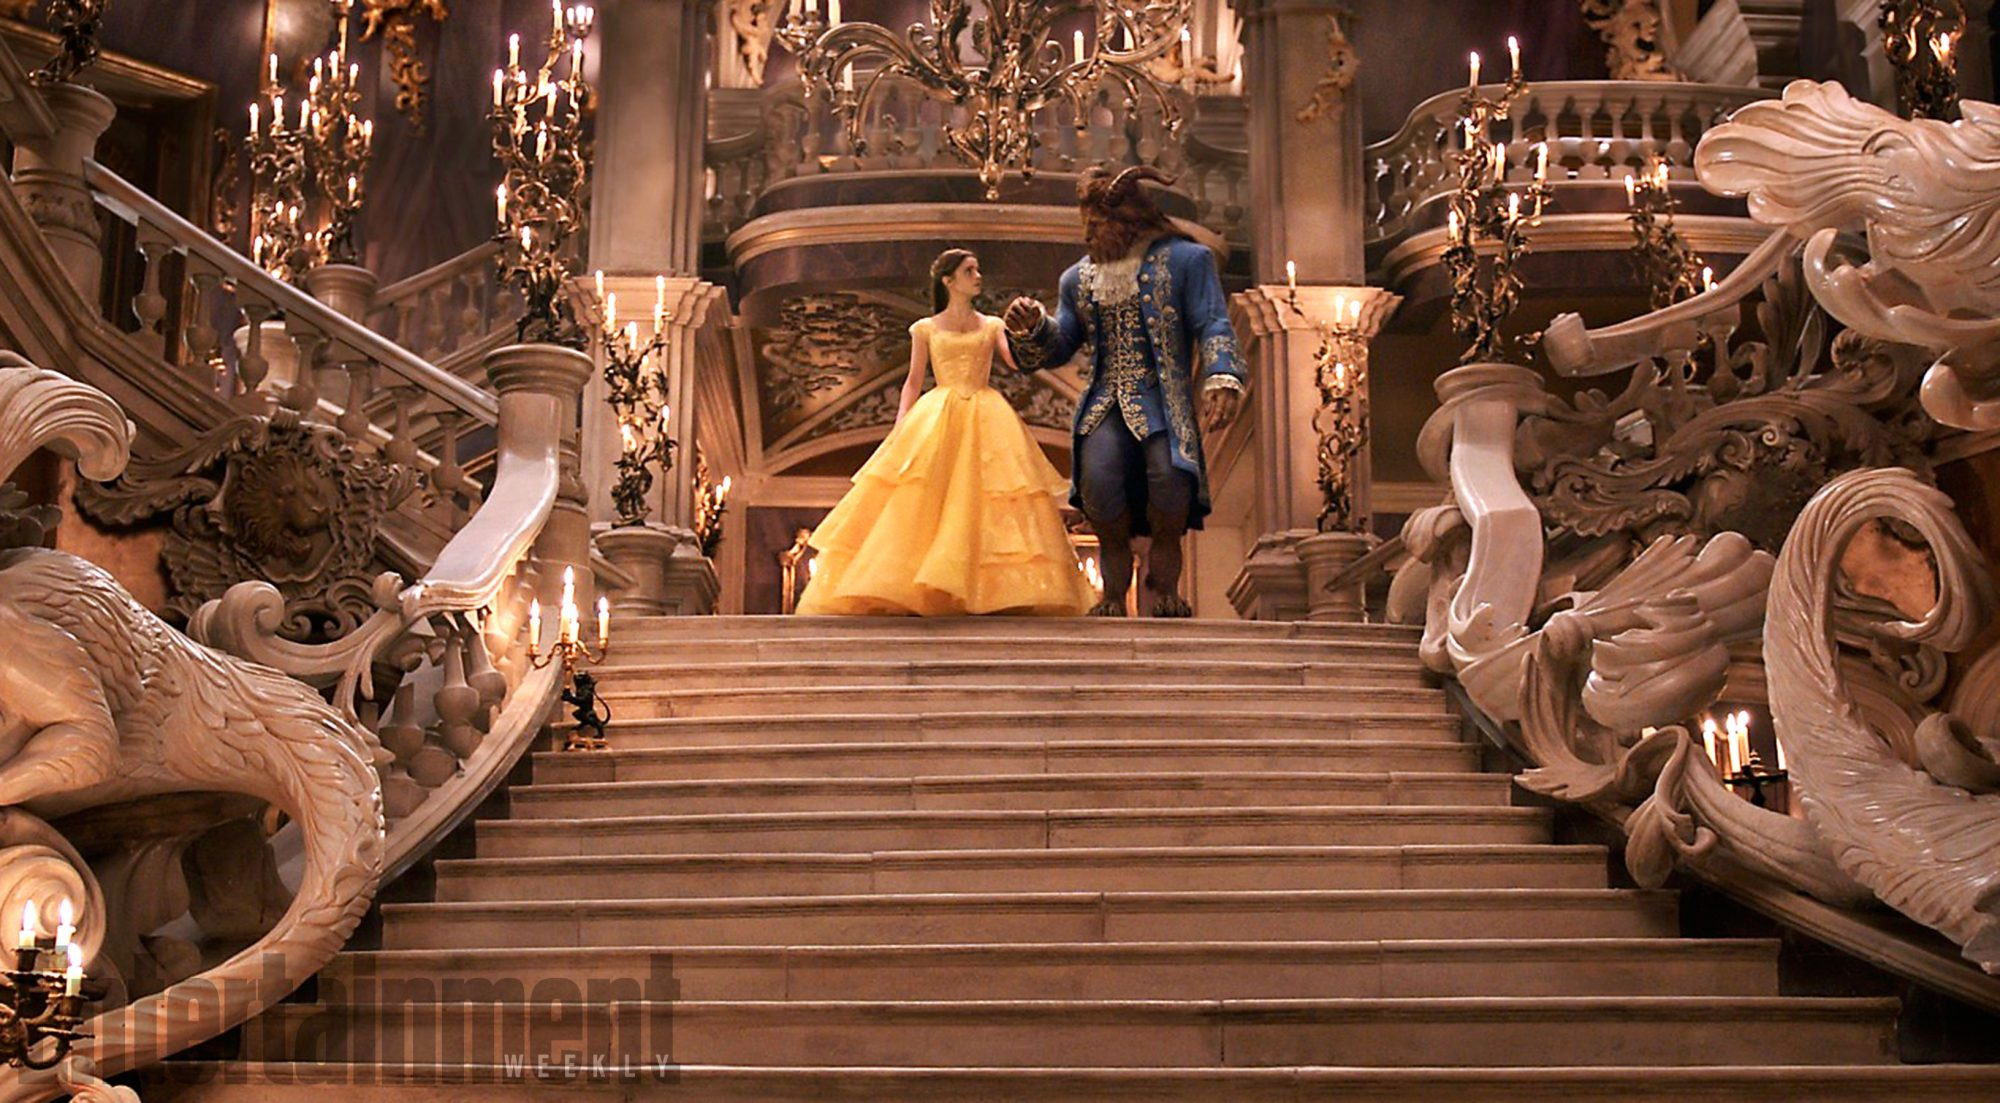 Disney's Beauty and the Beast: New photos